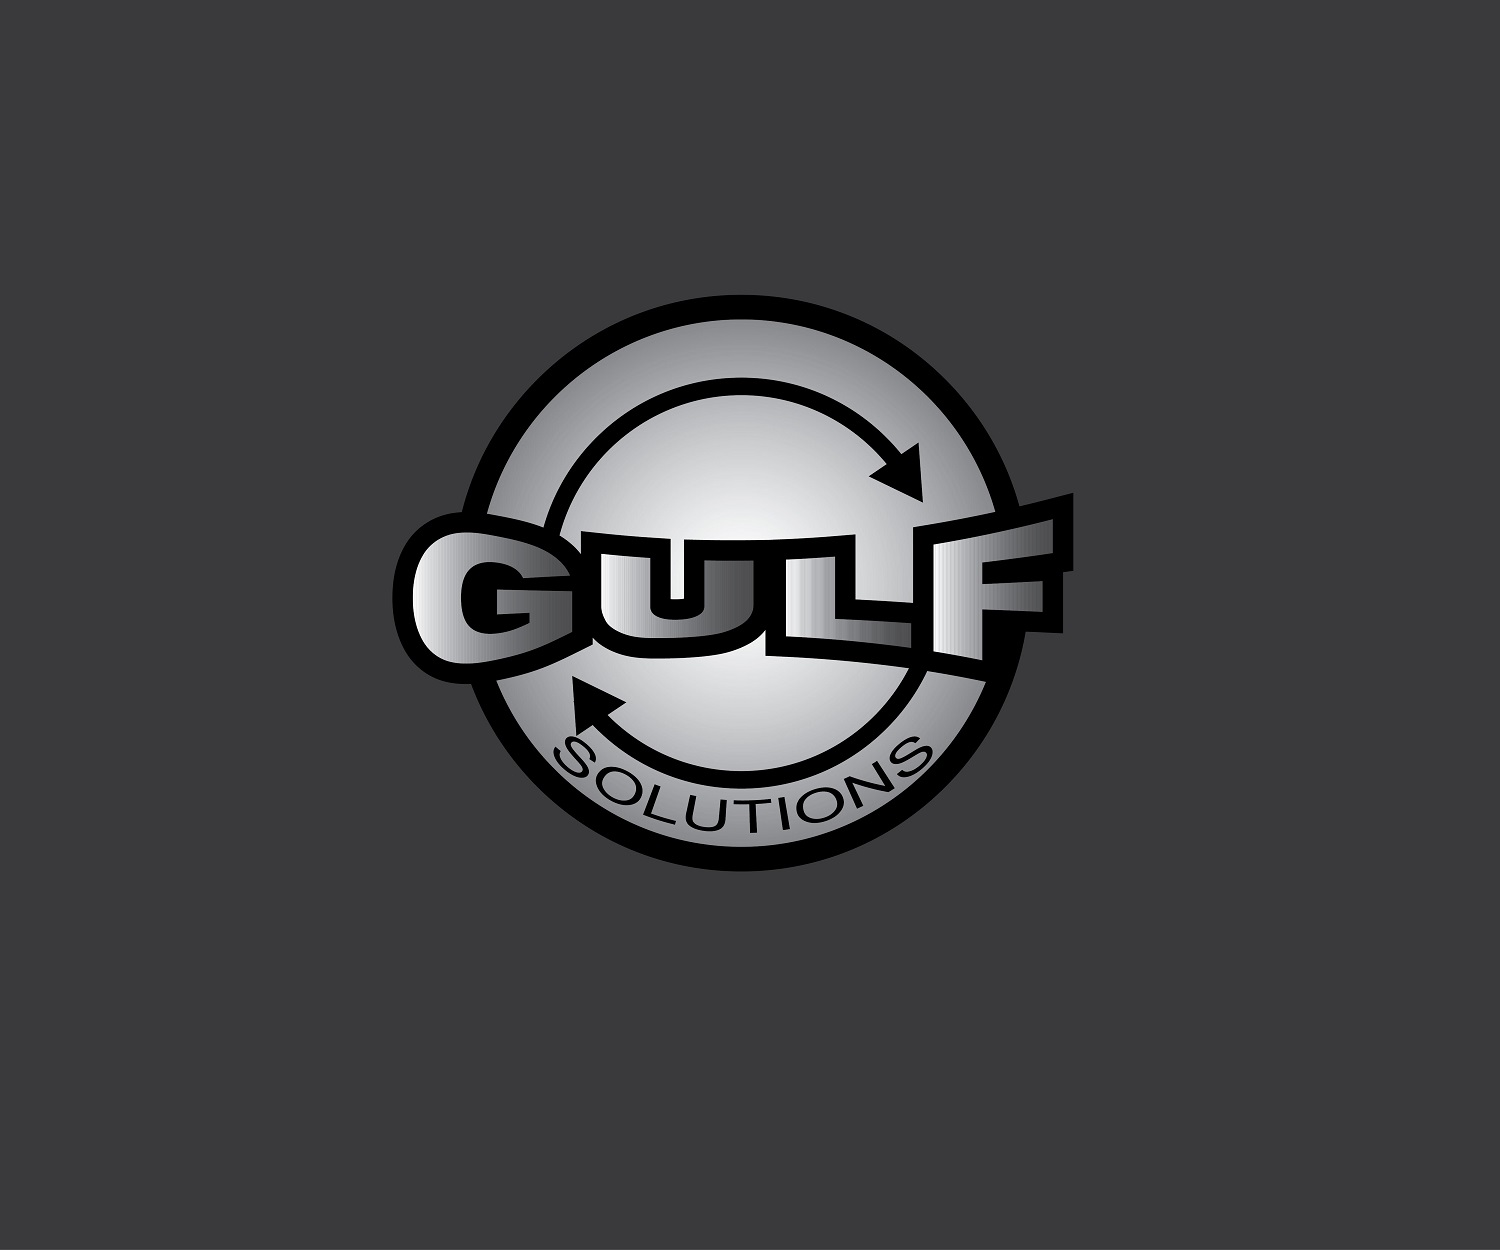 Logo Design by jhunzkie24 - Entry No. 77 in the Logo Design Contest New Logo Design for Gulf solutions company.